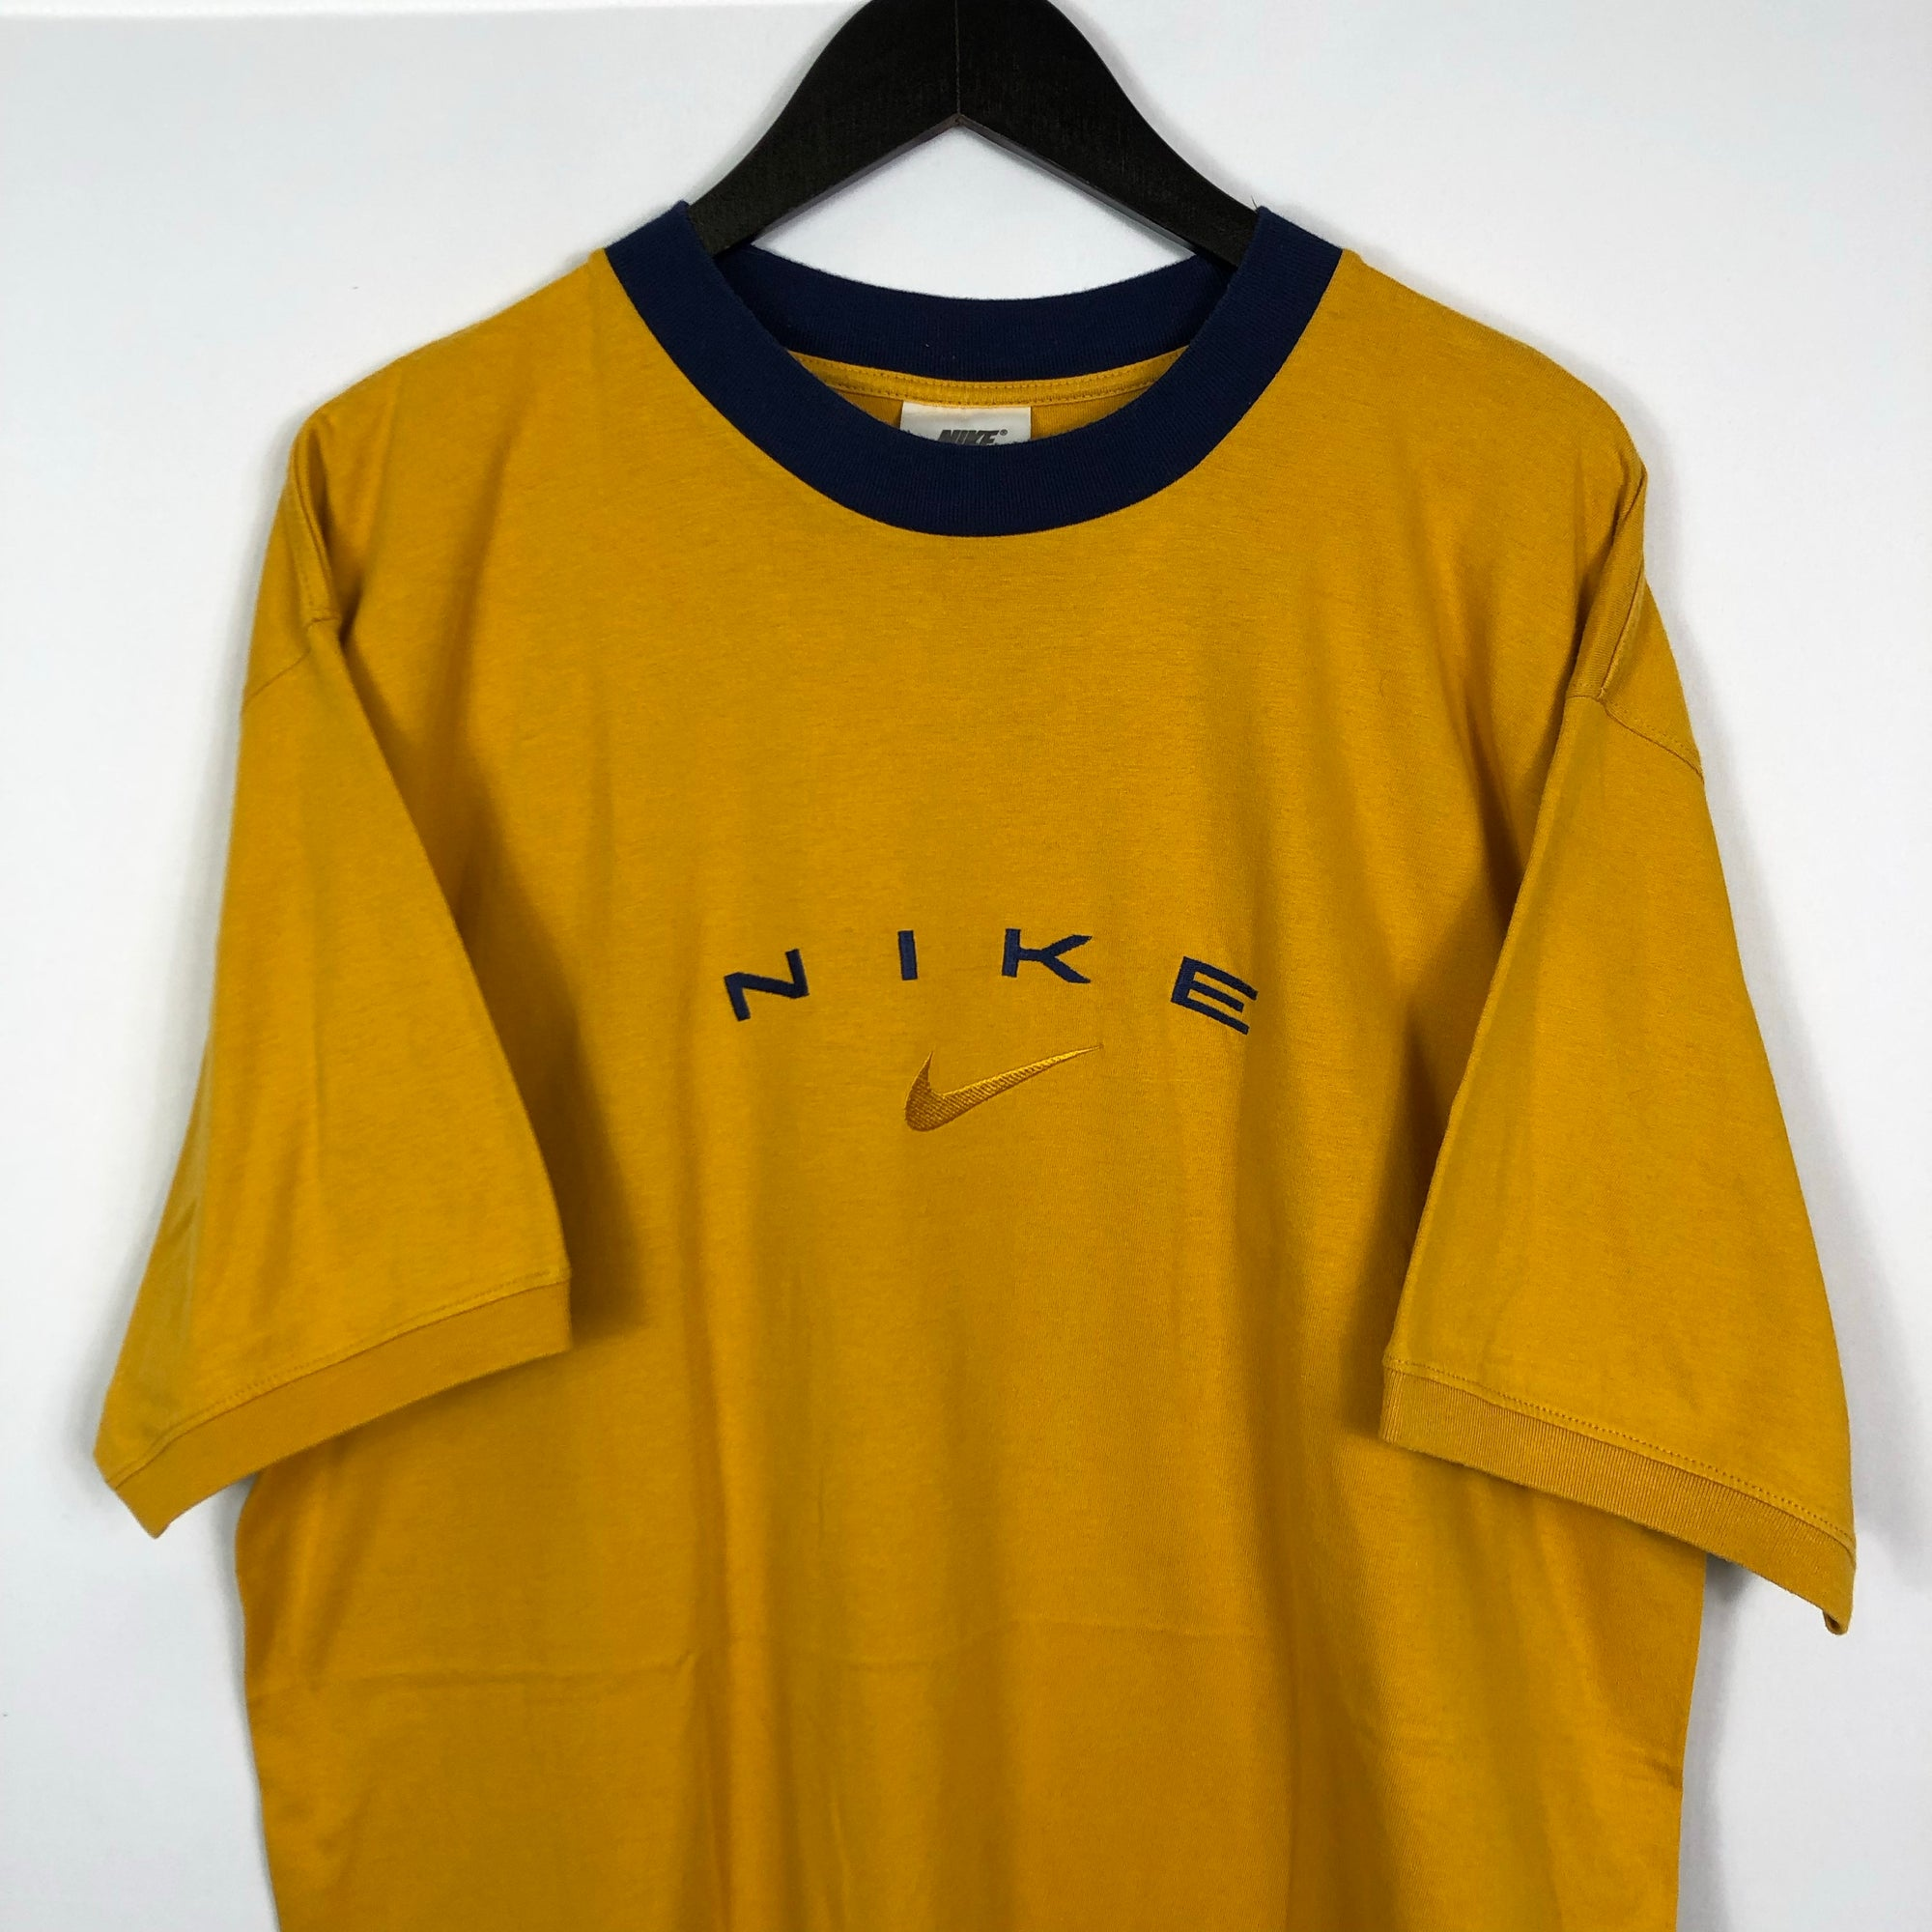 Vintage Nike Spellout Tee in Yellow & Navy - XL